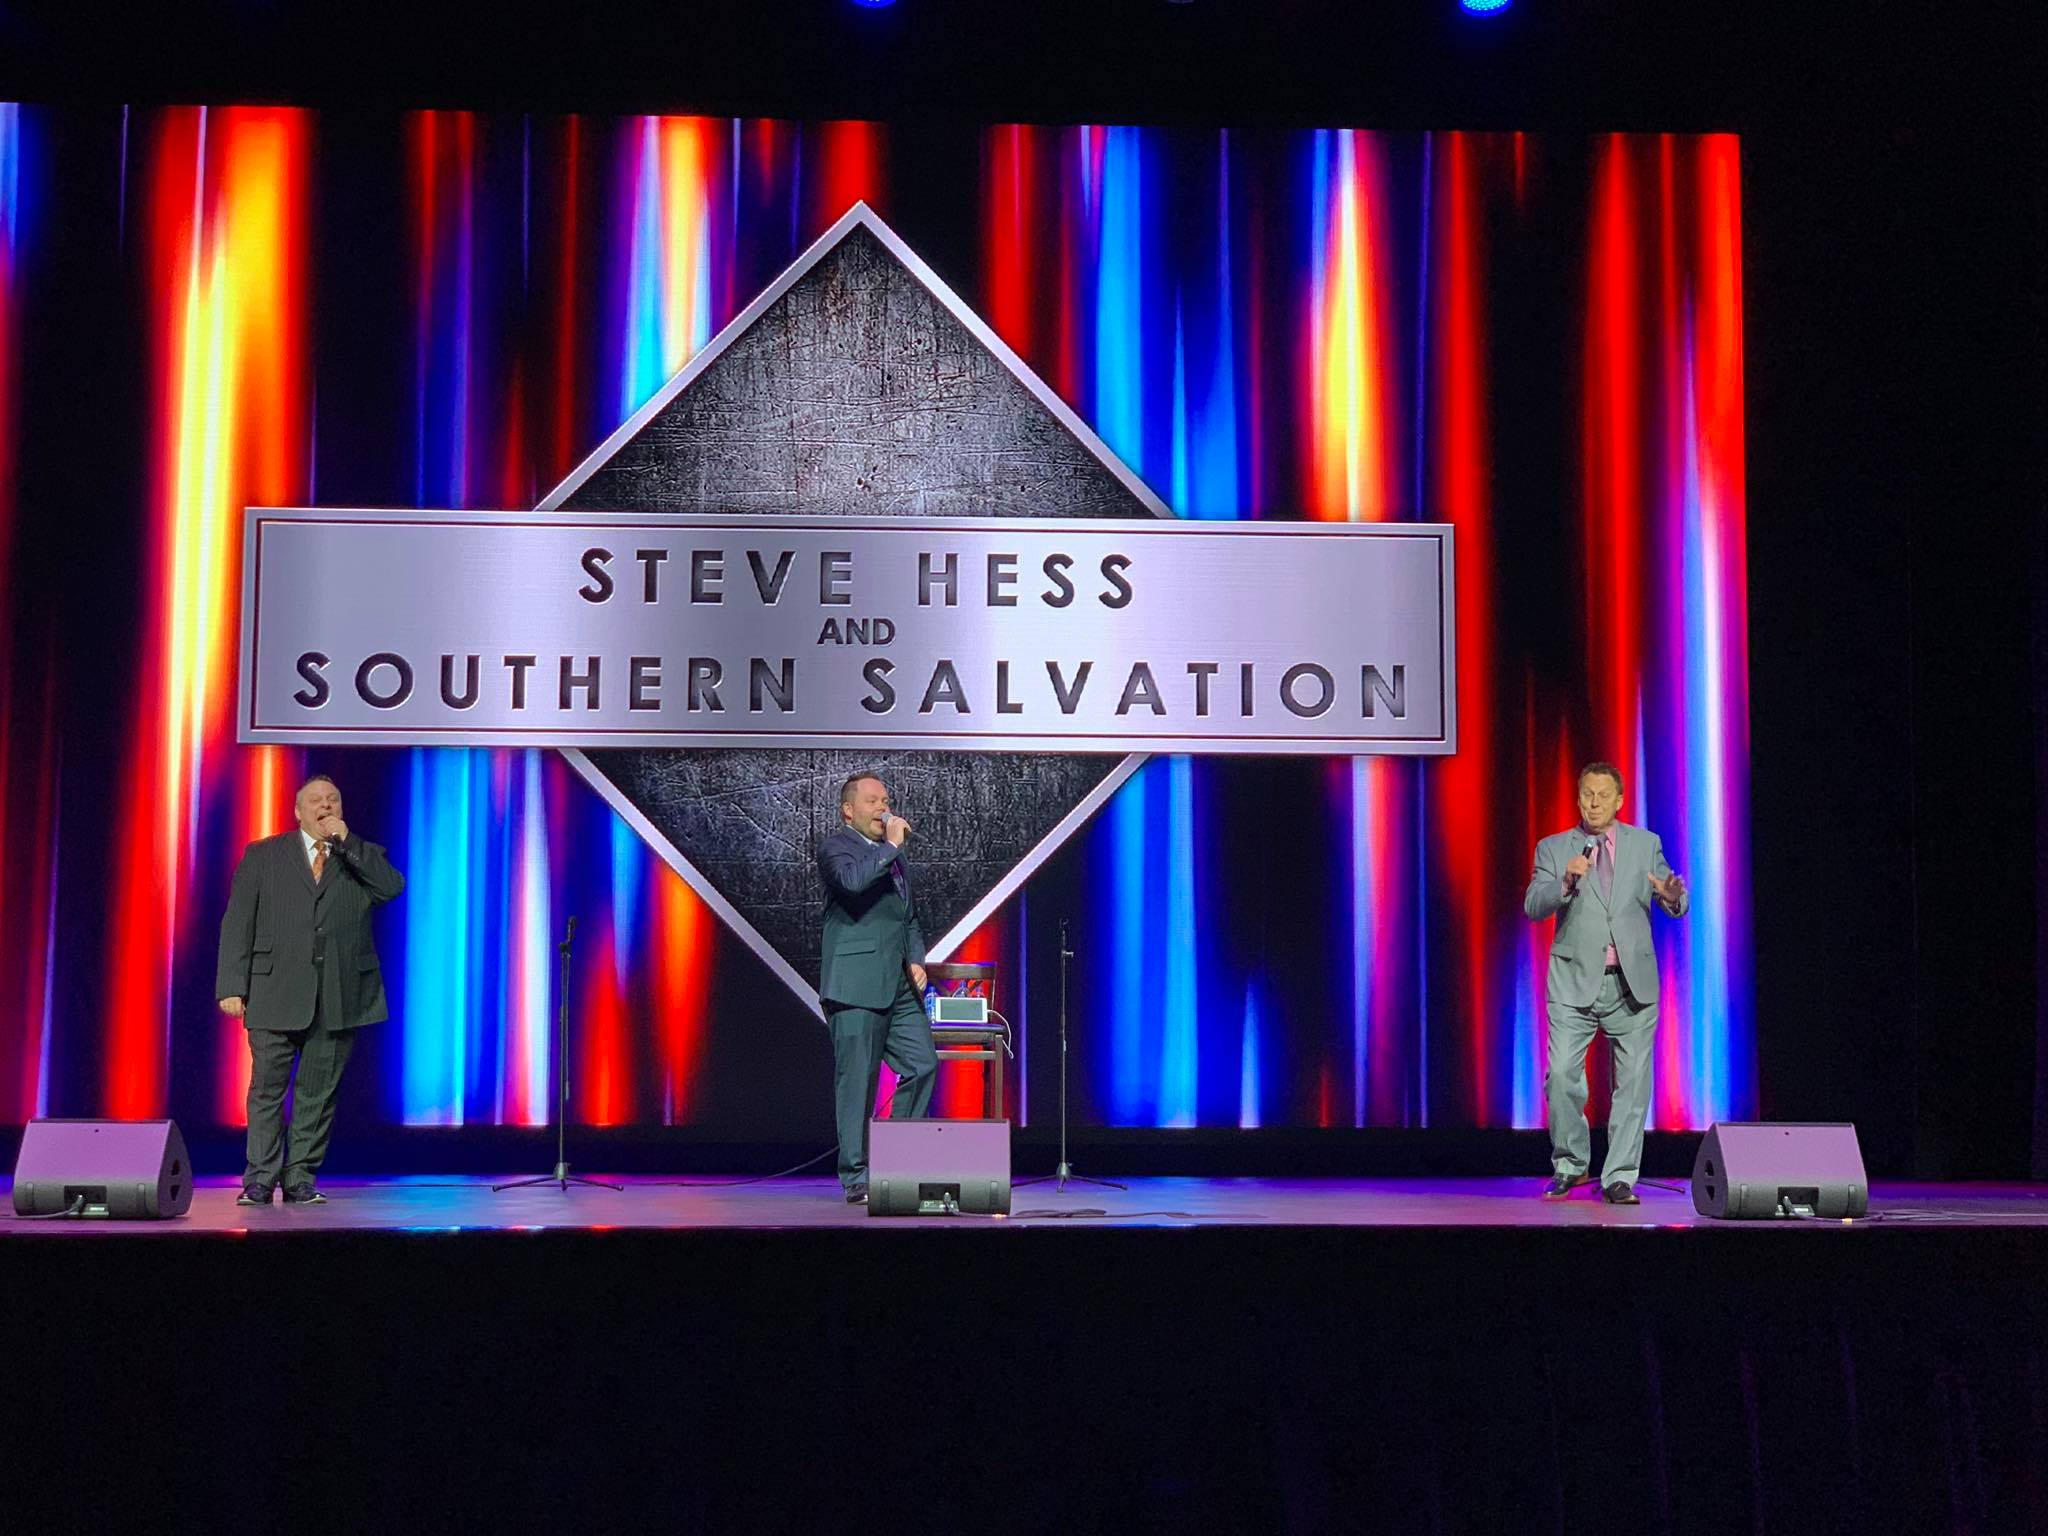 Steve Hess & Southern Salvation Join The Ark Encounter Team